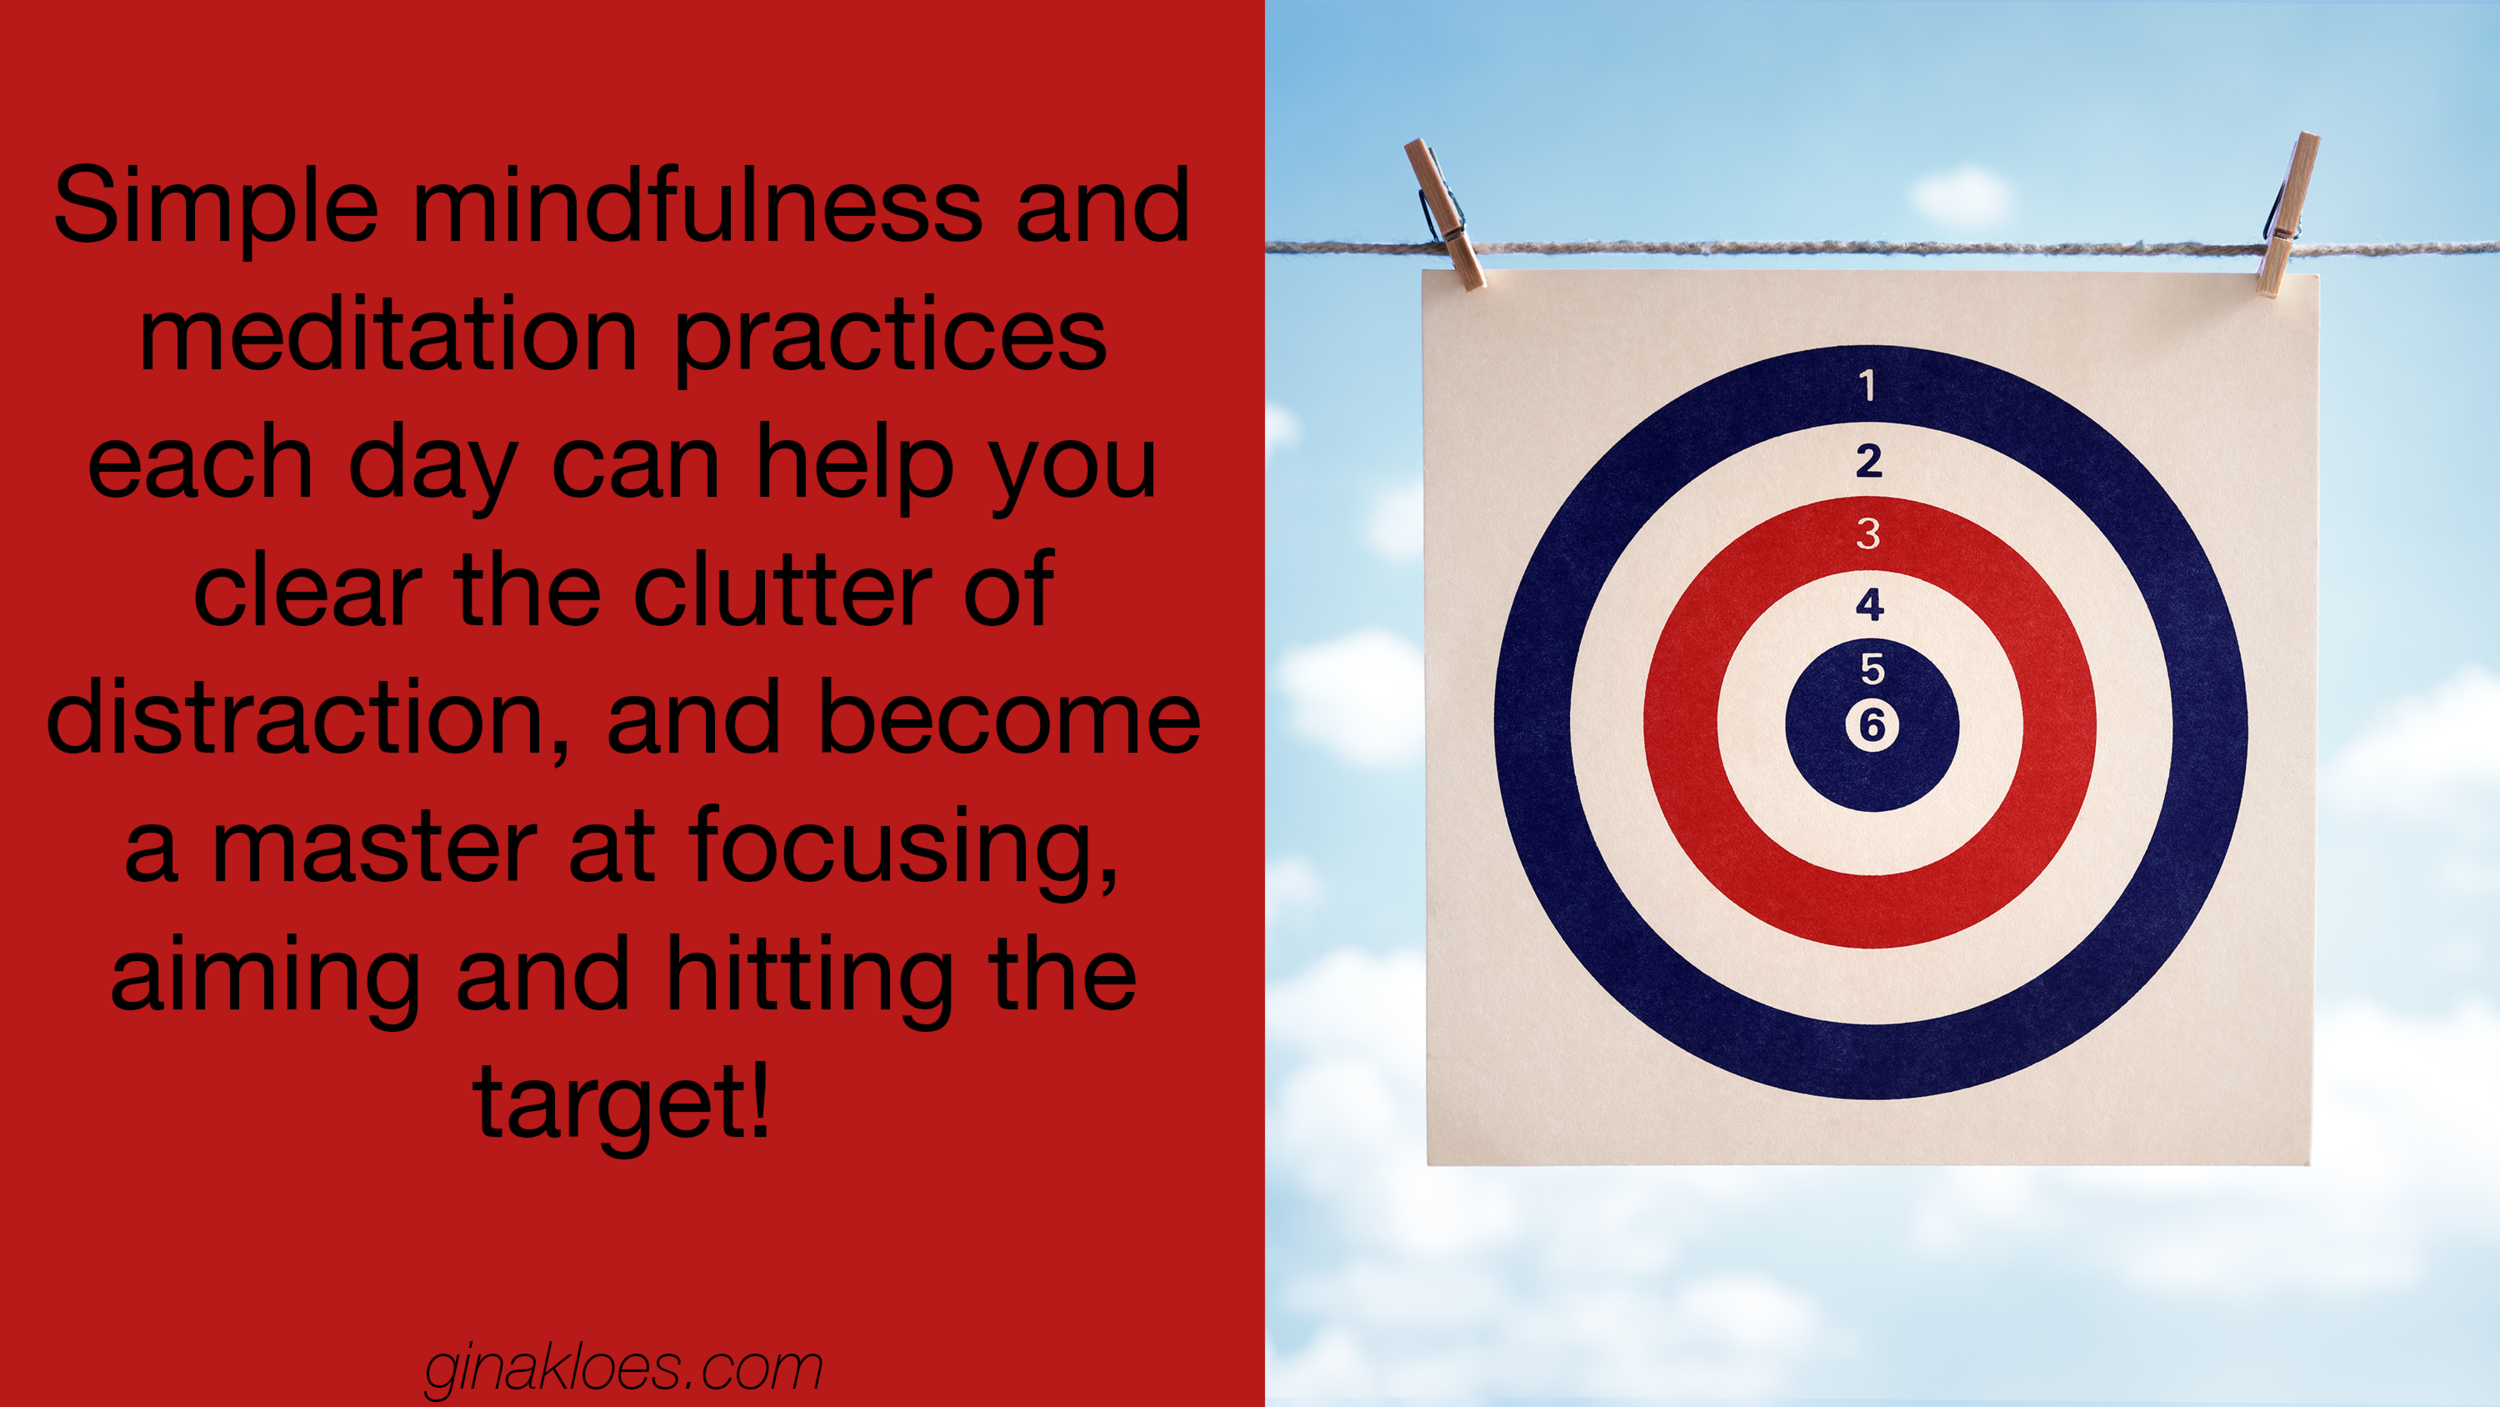 Gina Kloes - Focus Aim Hit The Target P2 - Blog Images.png